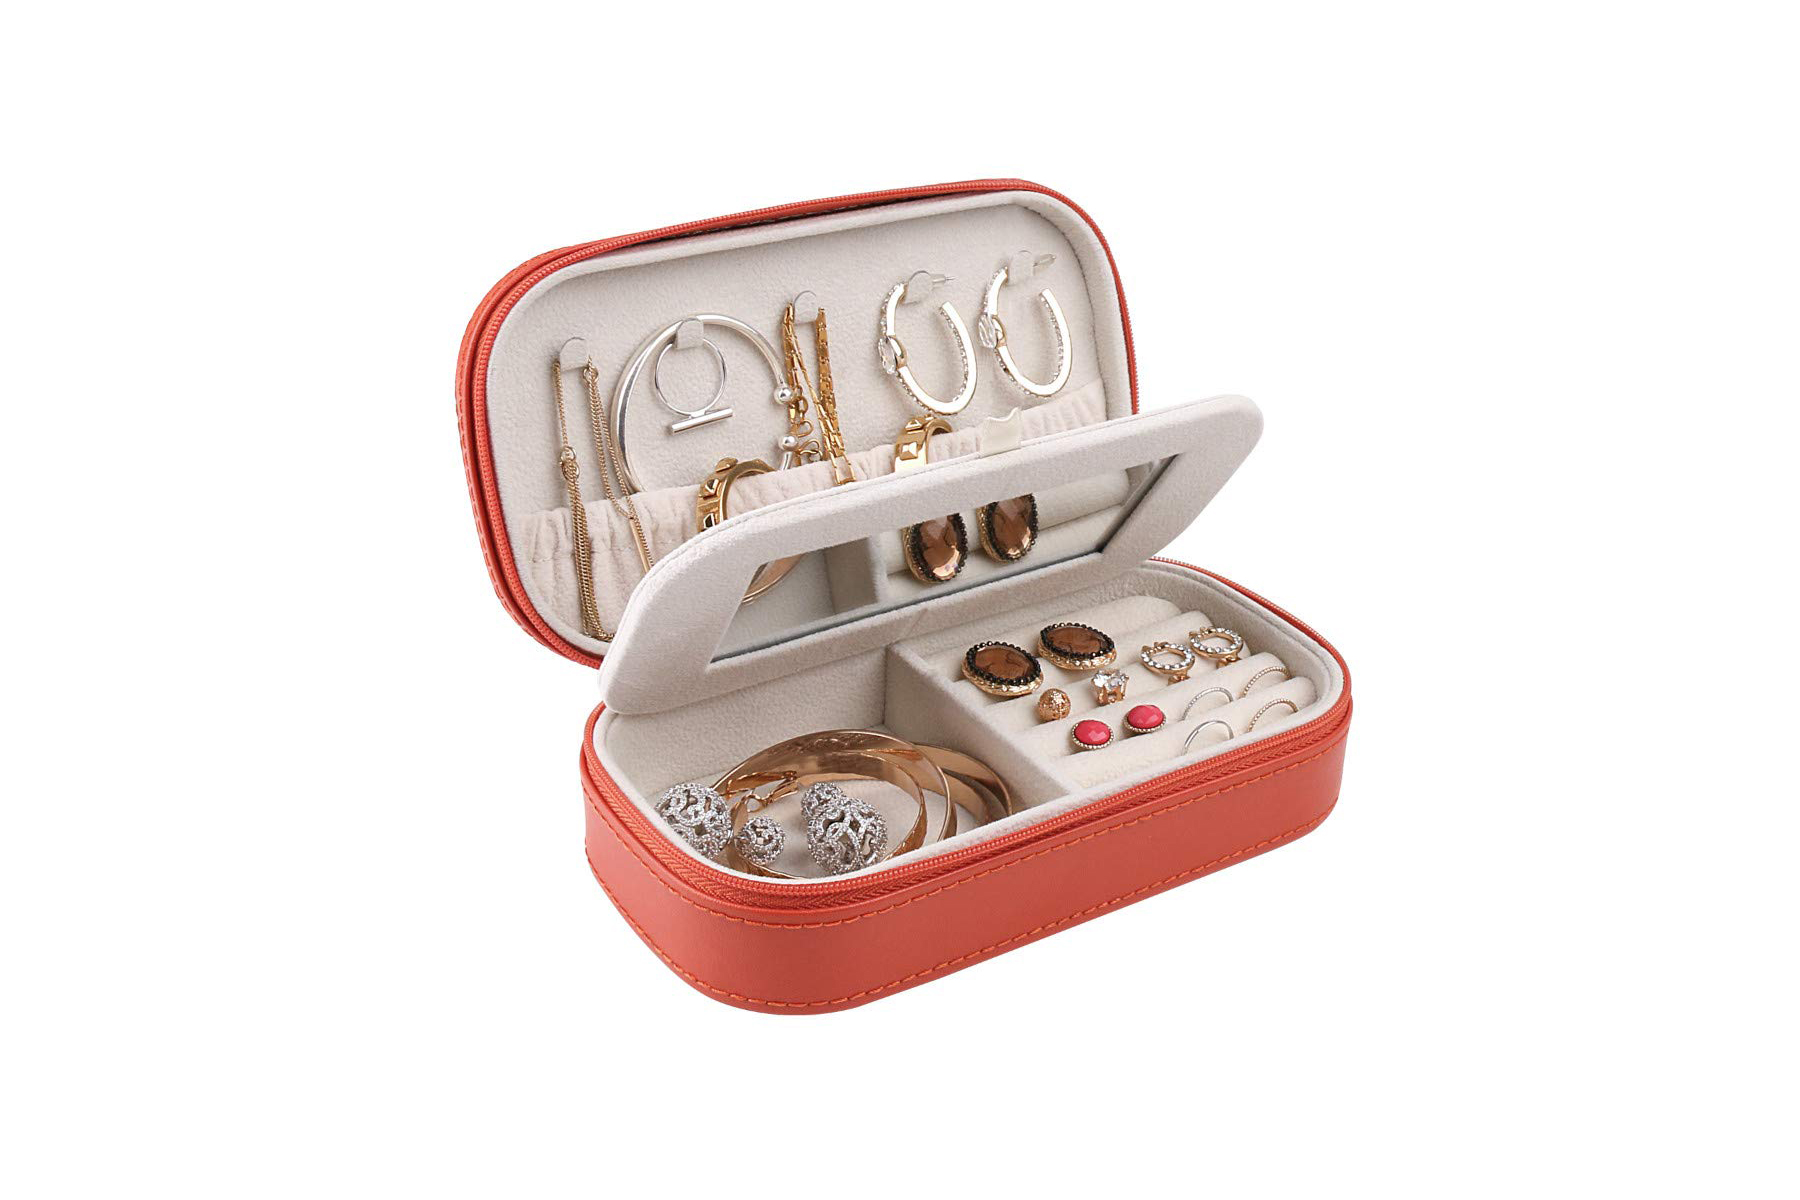 A Comely Travel Box